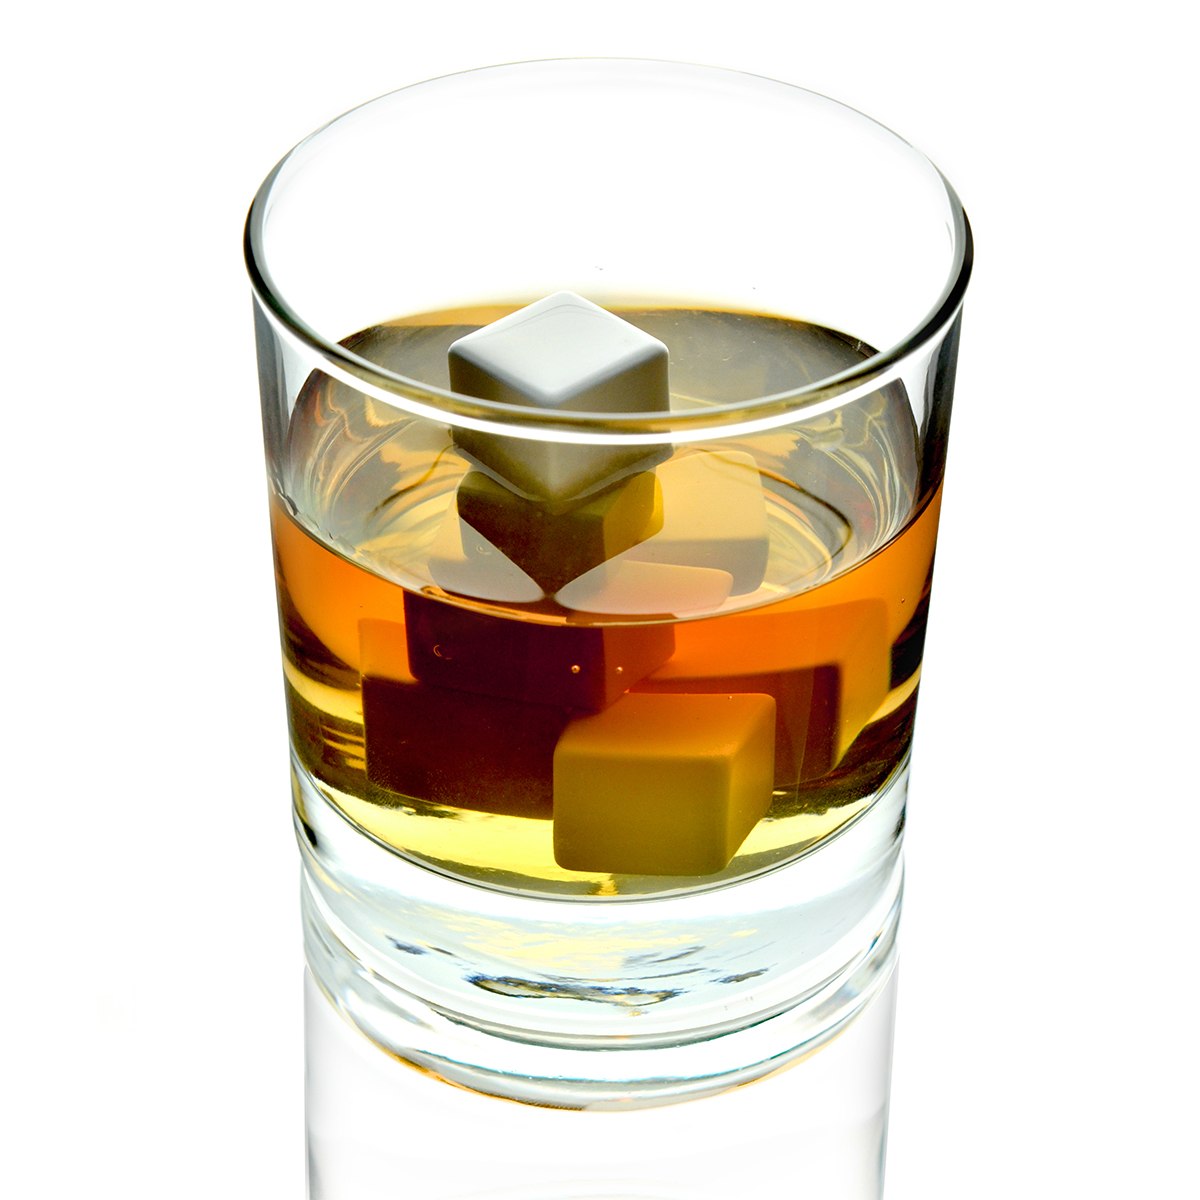 Viskija Akmeņi no keramikas 4gb XL | Whisky ( whiskey ) Stones Cooling Cubes - Ceramic, White